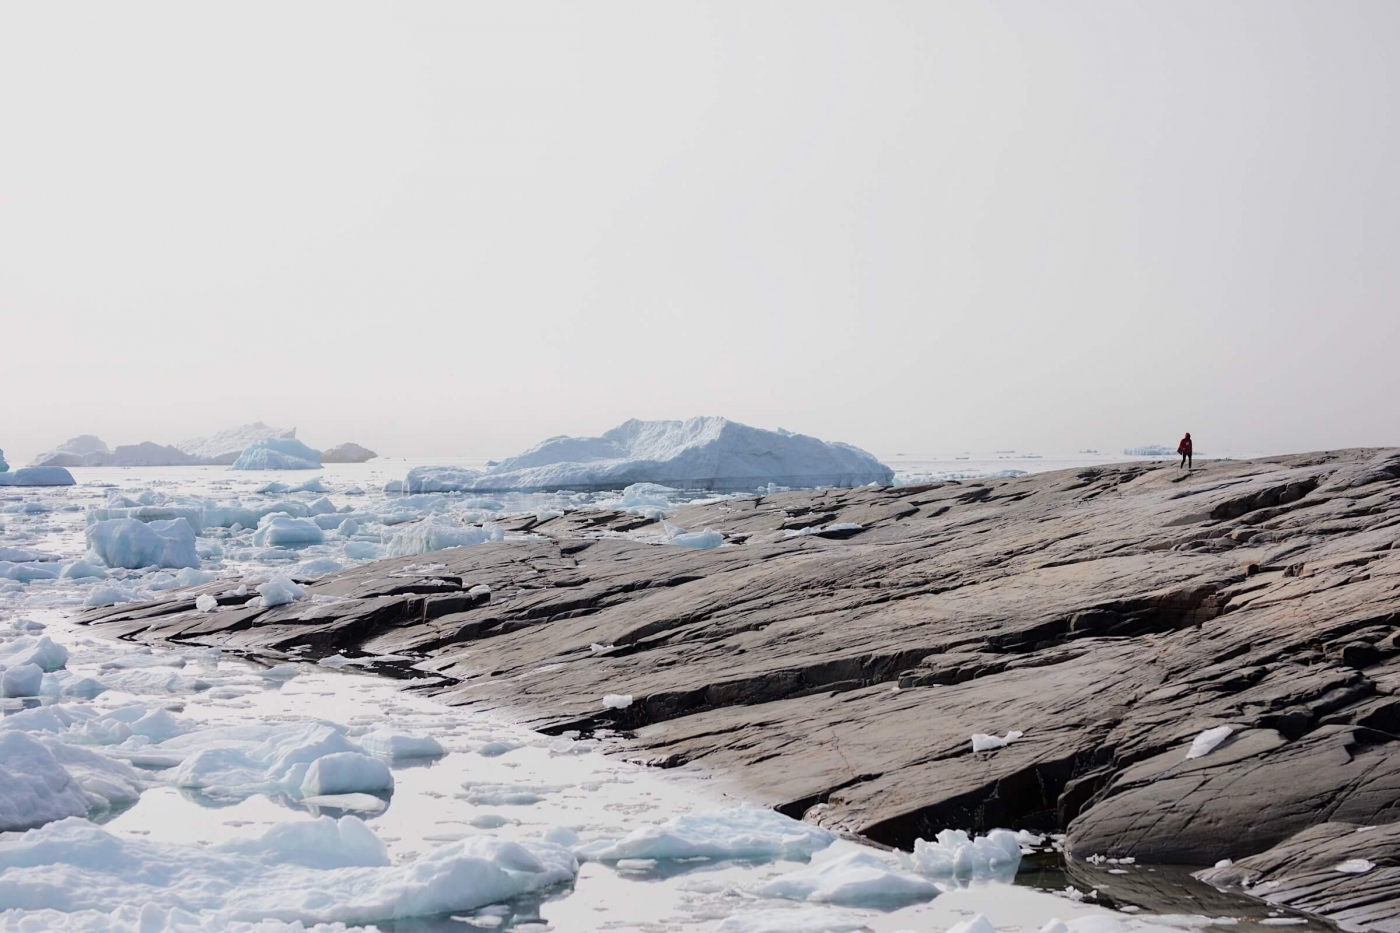 Artist walks along the shore, looking small amongst the ice field. Photo by Jessie Brinkman Evans - Visit Greenland